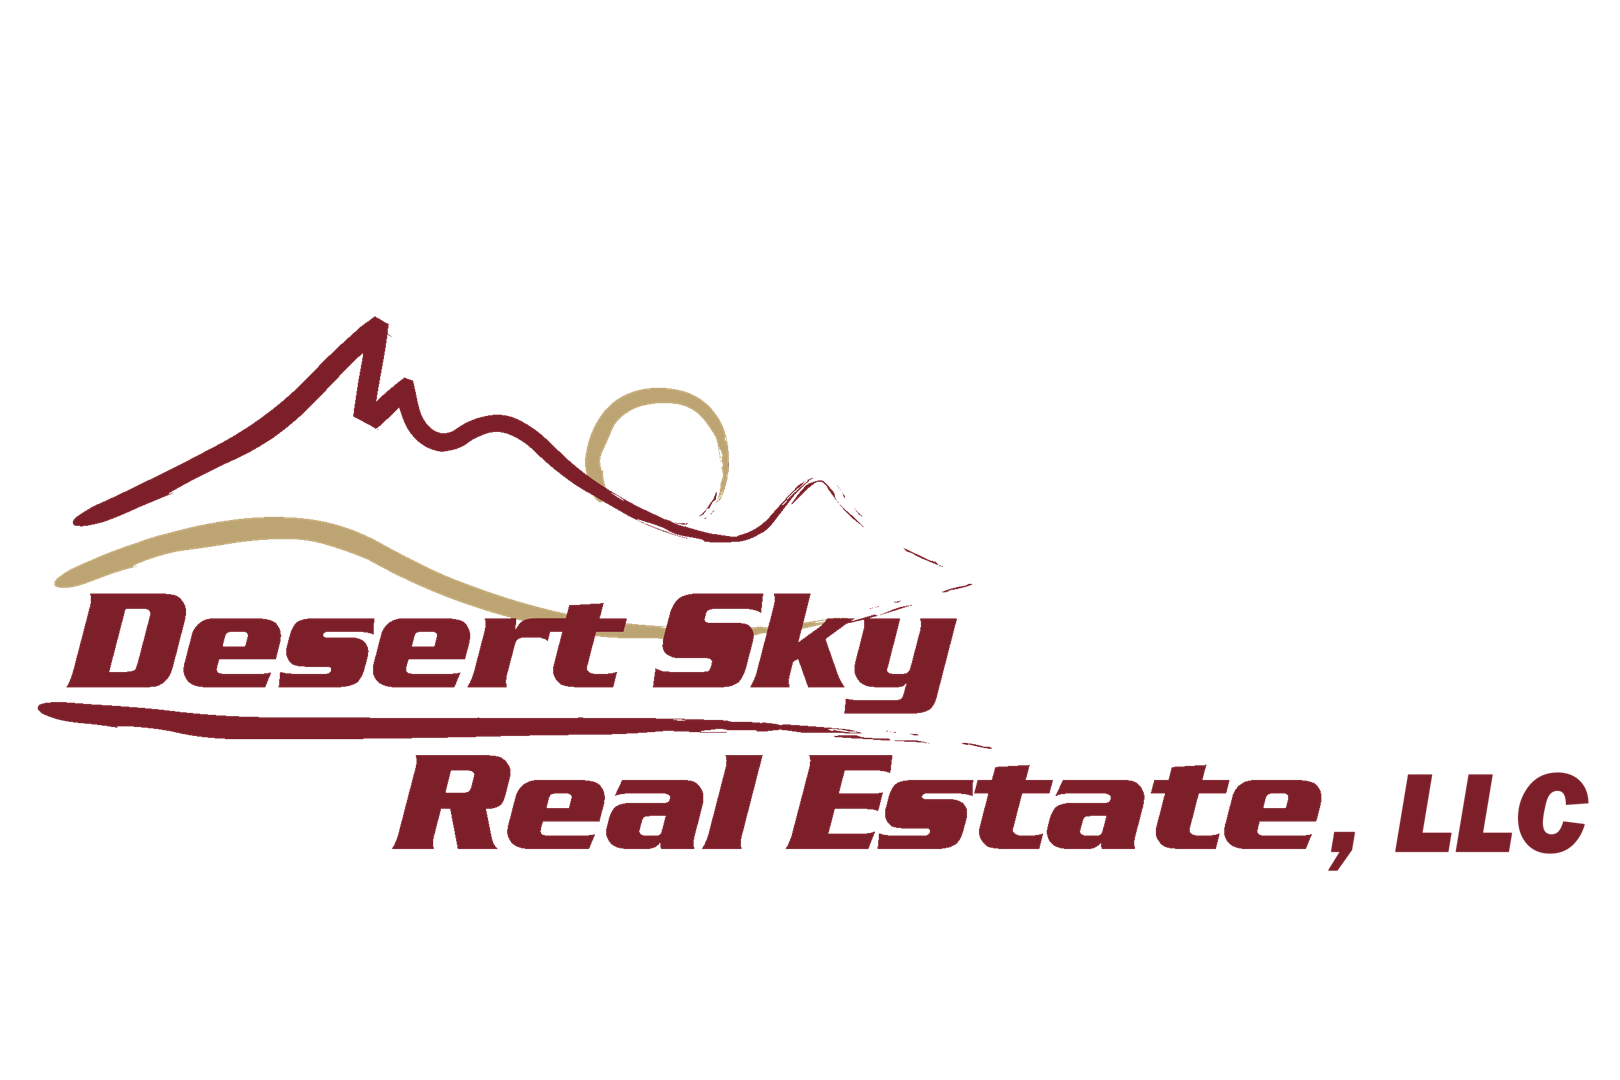 Desert Sky Real Estate, LLC